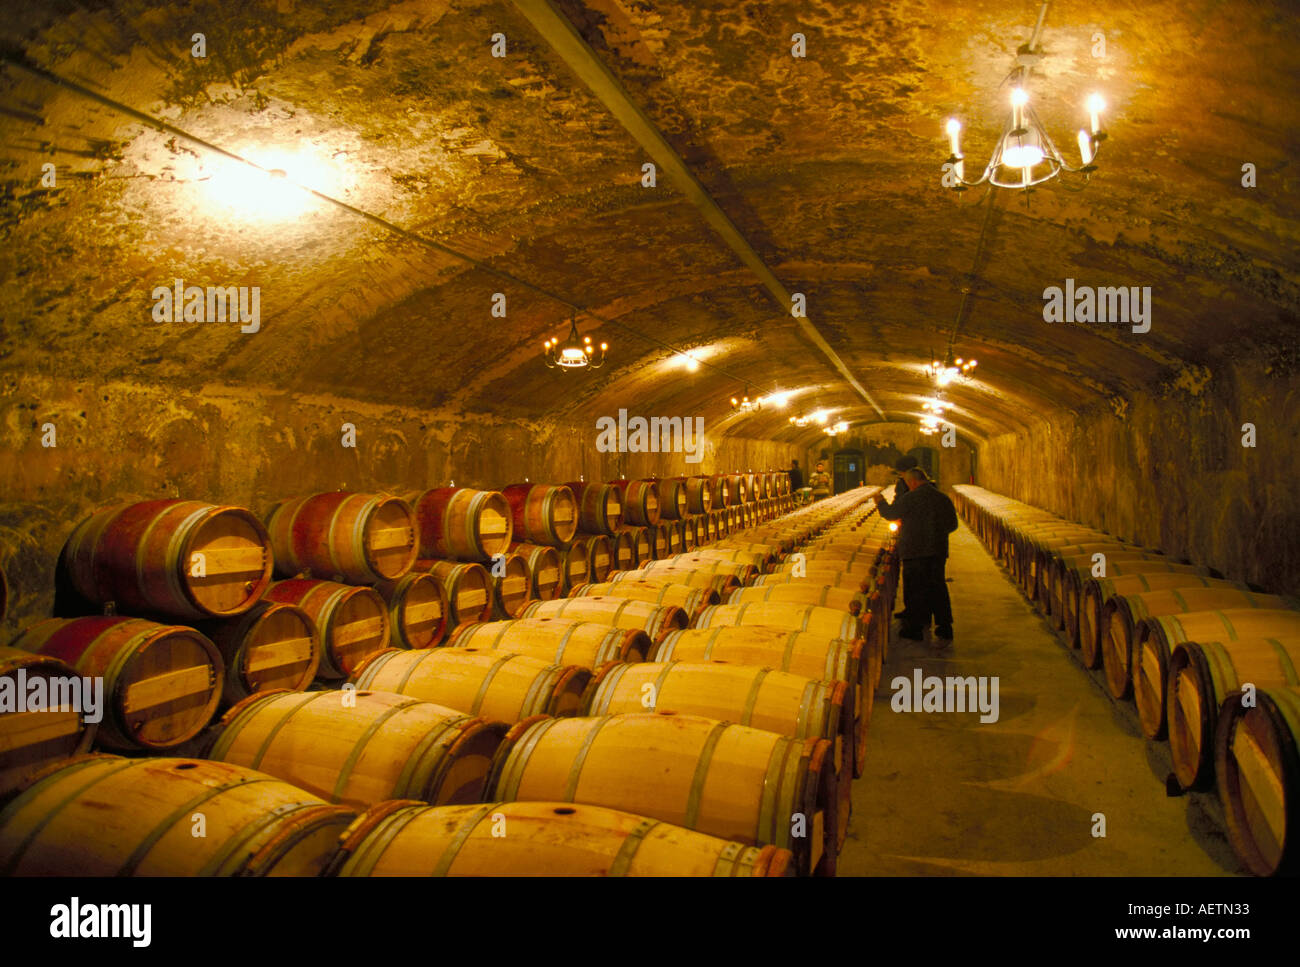 The cellars Chateau Lafitte Rothschild Pauillac Gironde France Europe - Stock Image